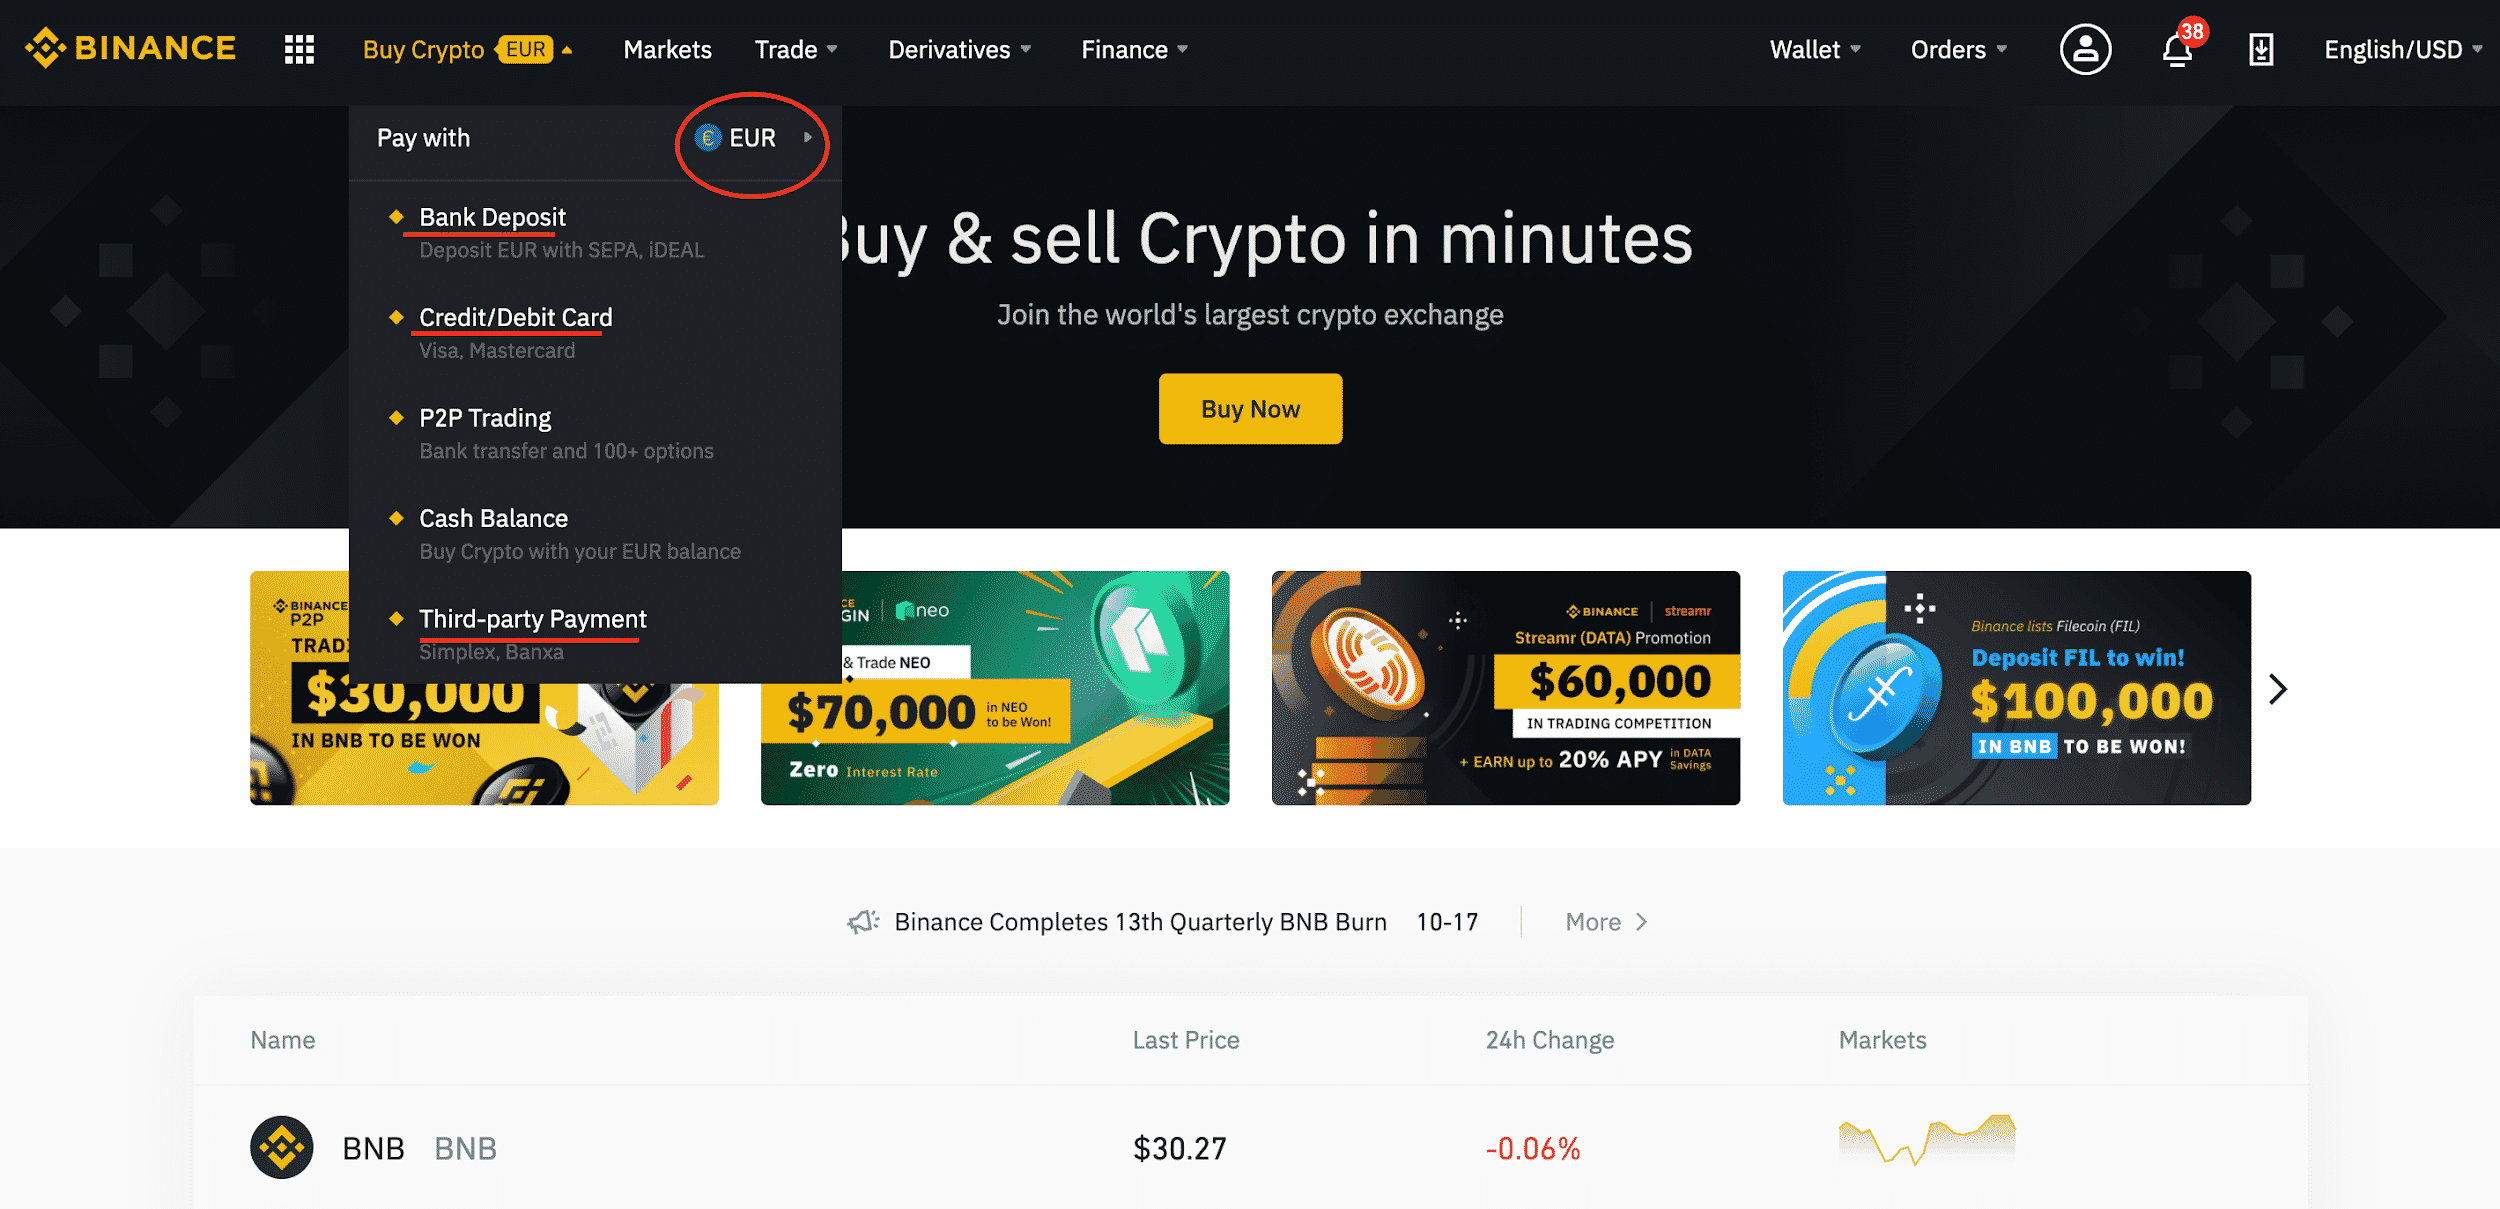 Official Binance website showing how to buy Bitcoin with Euro